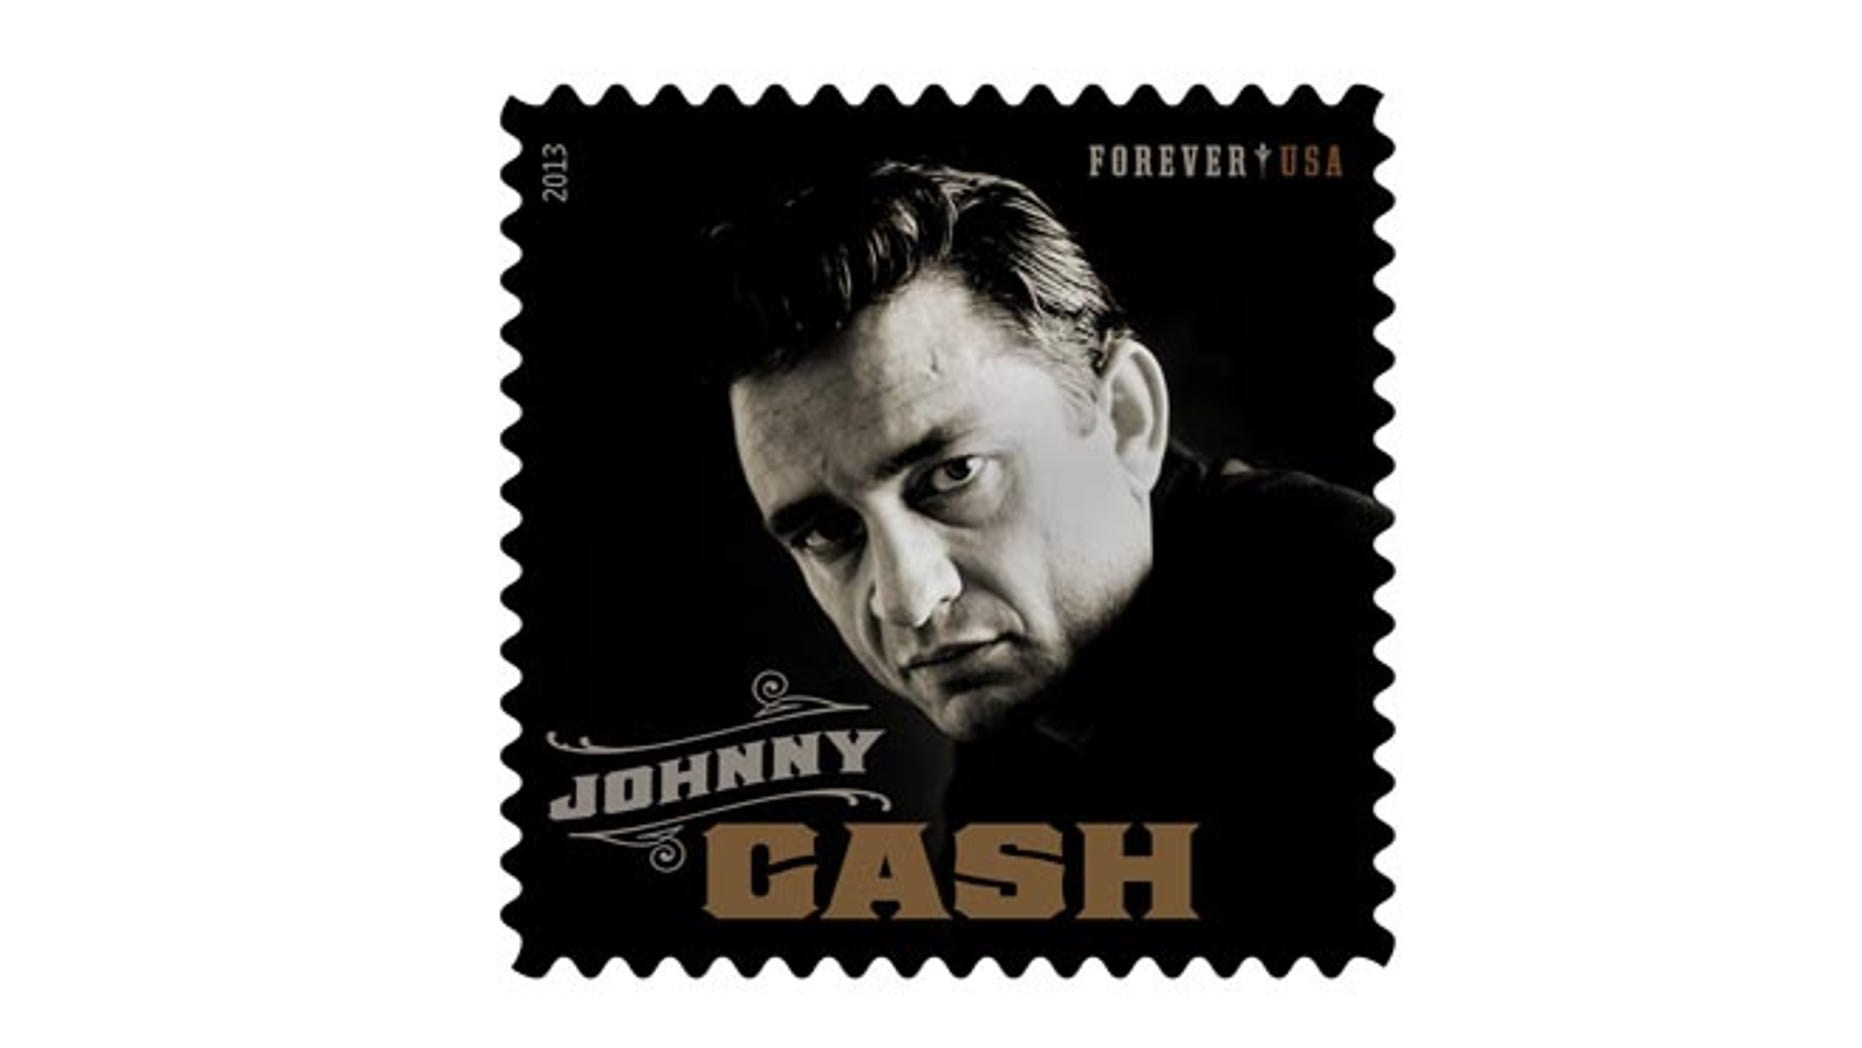 This product image released by the Unites States Postal Service shows the Johnny Cash Forever stamp. The stamp, honoring the late country music singer, will be available on Wednesday, June 5.